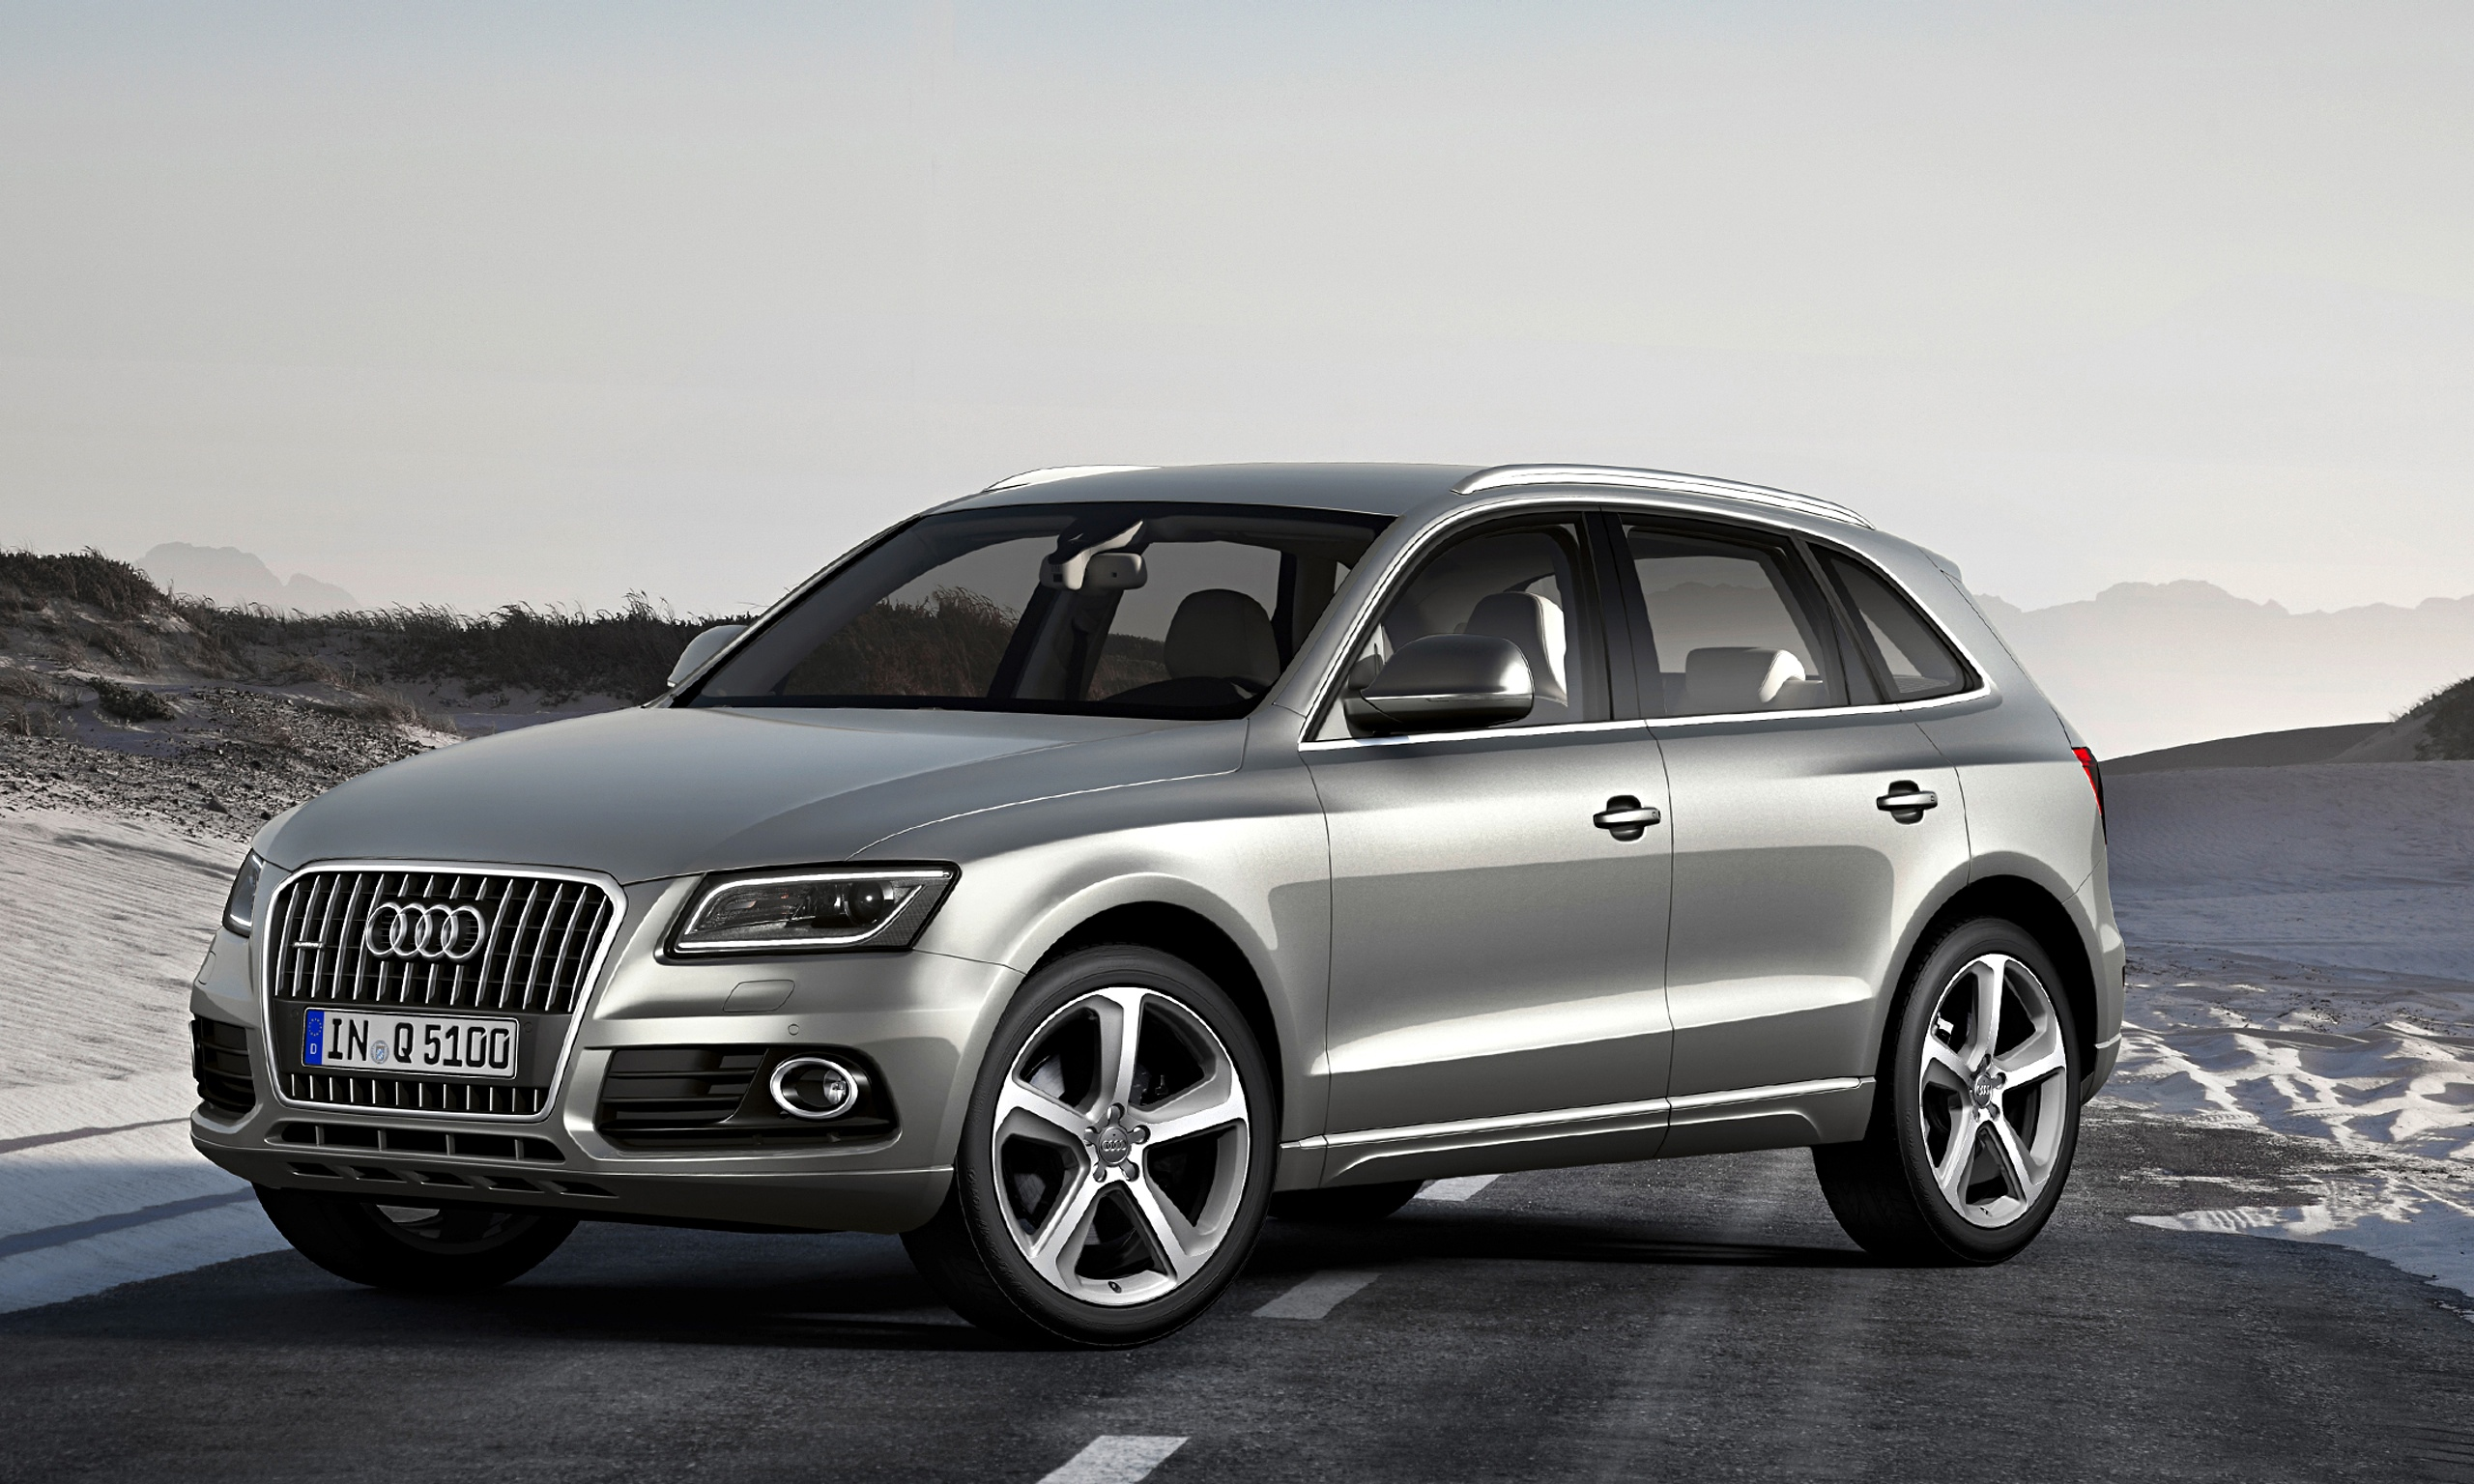 audi q5 car review technology the guardian. Black Bedroom Furniture Sets. Home Design Ideas